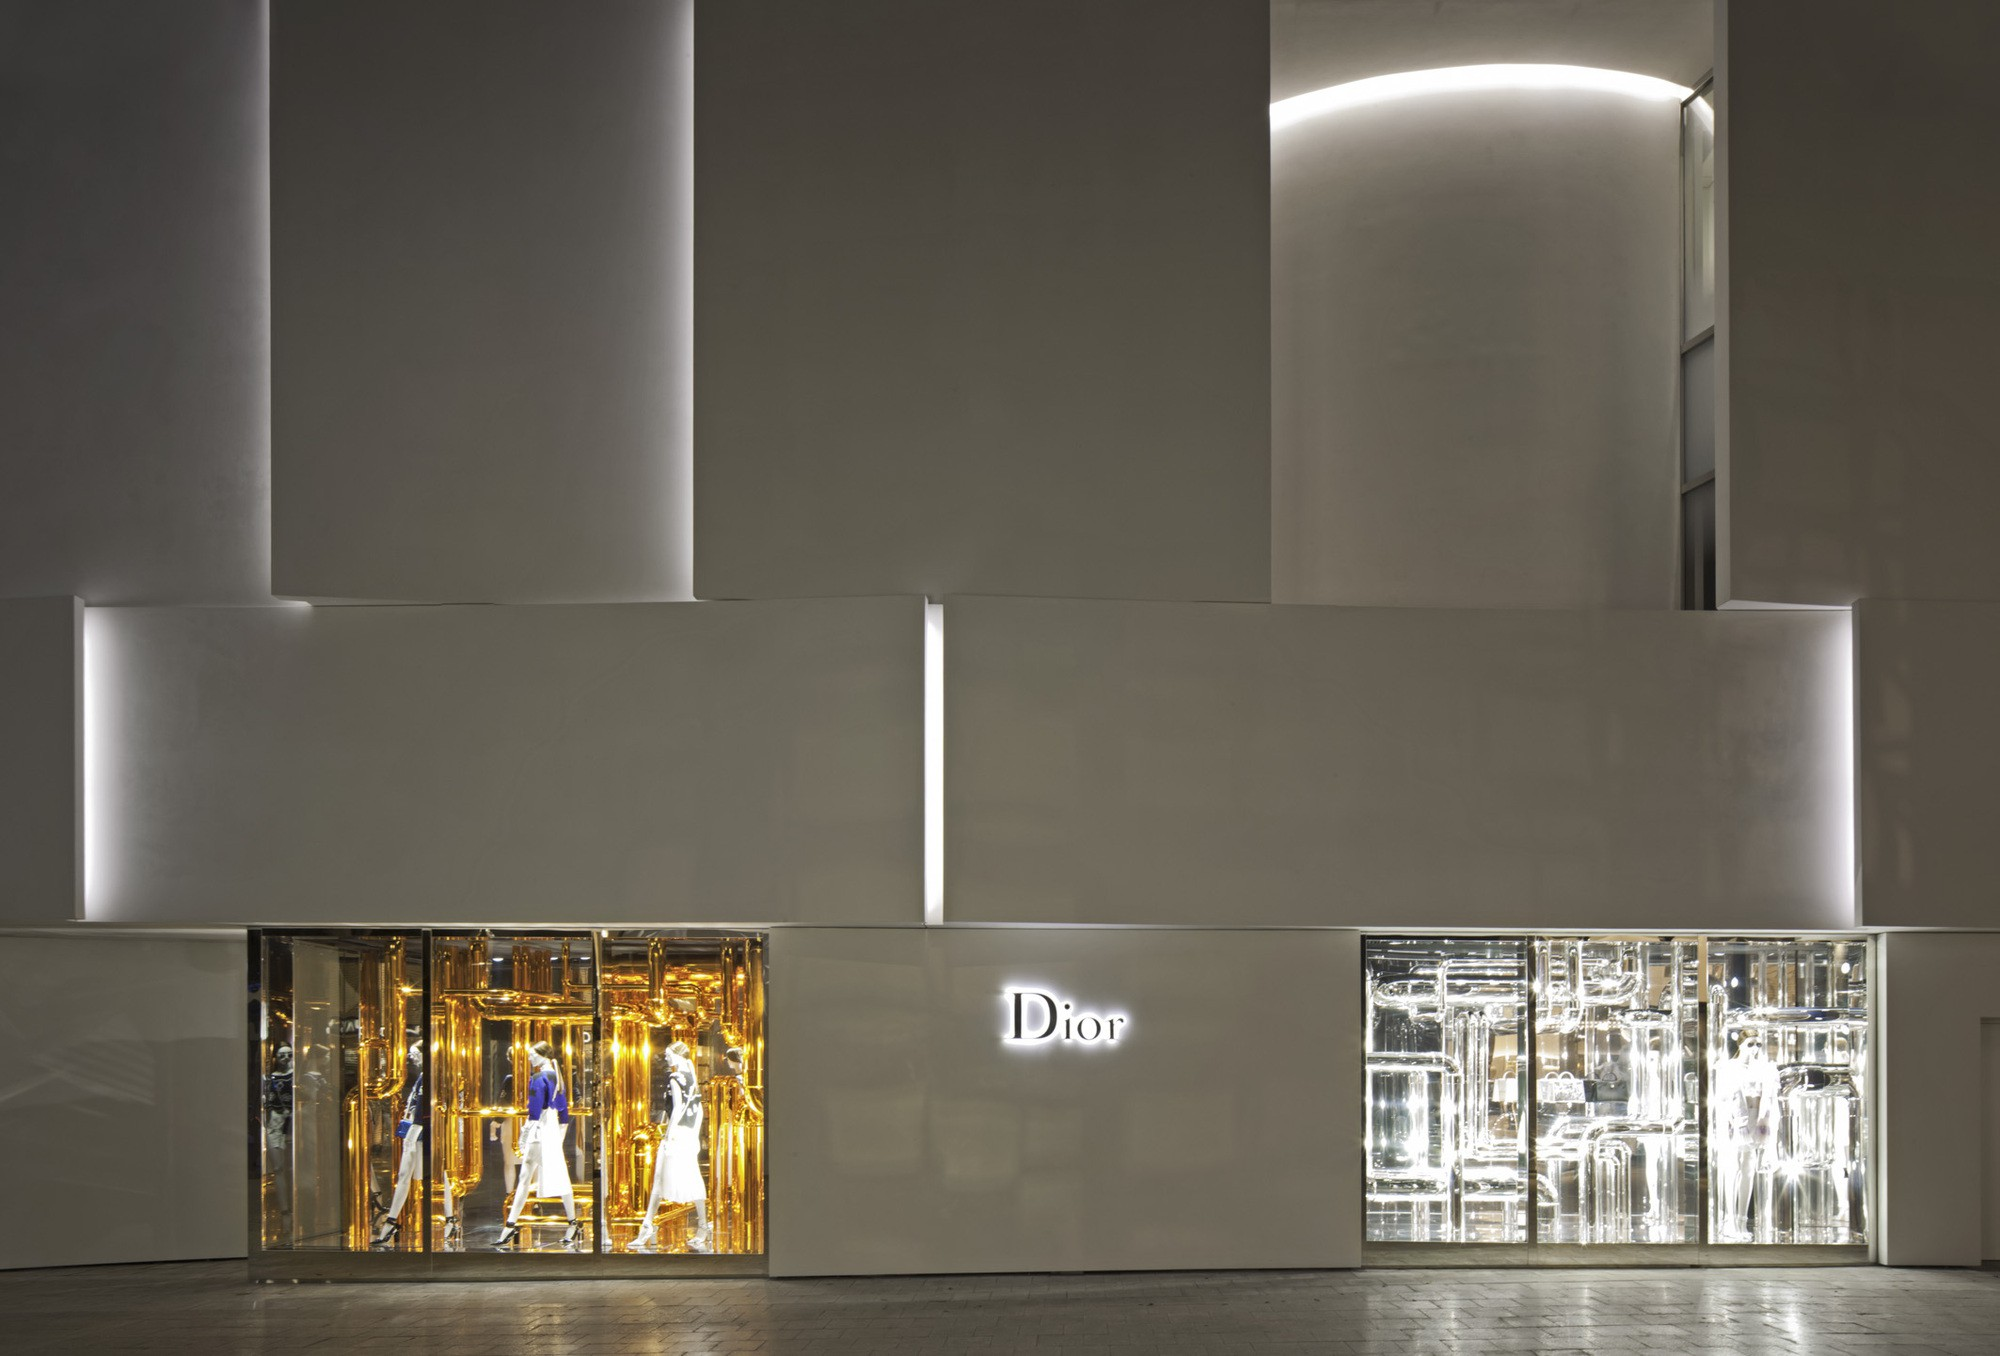 Dior Miami Facade-yesonfashion-com-16